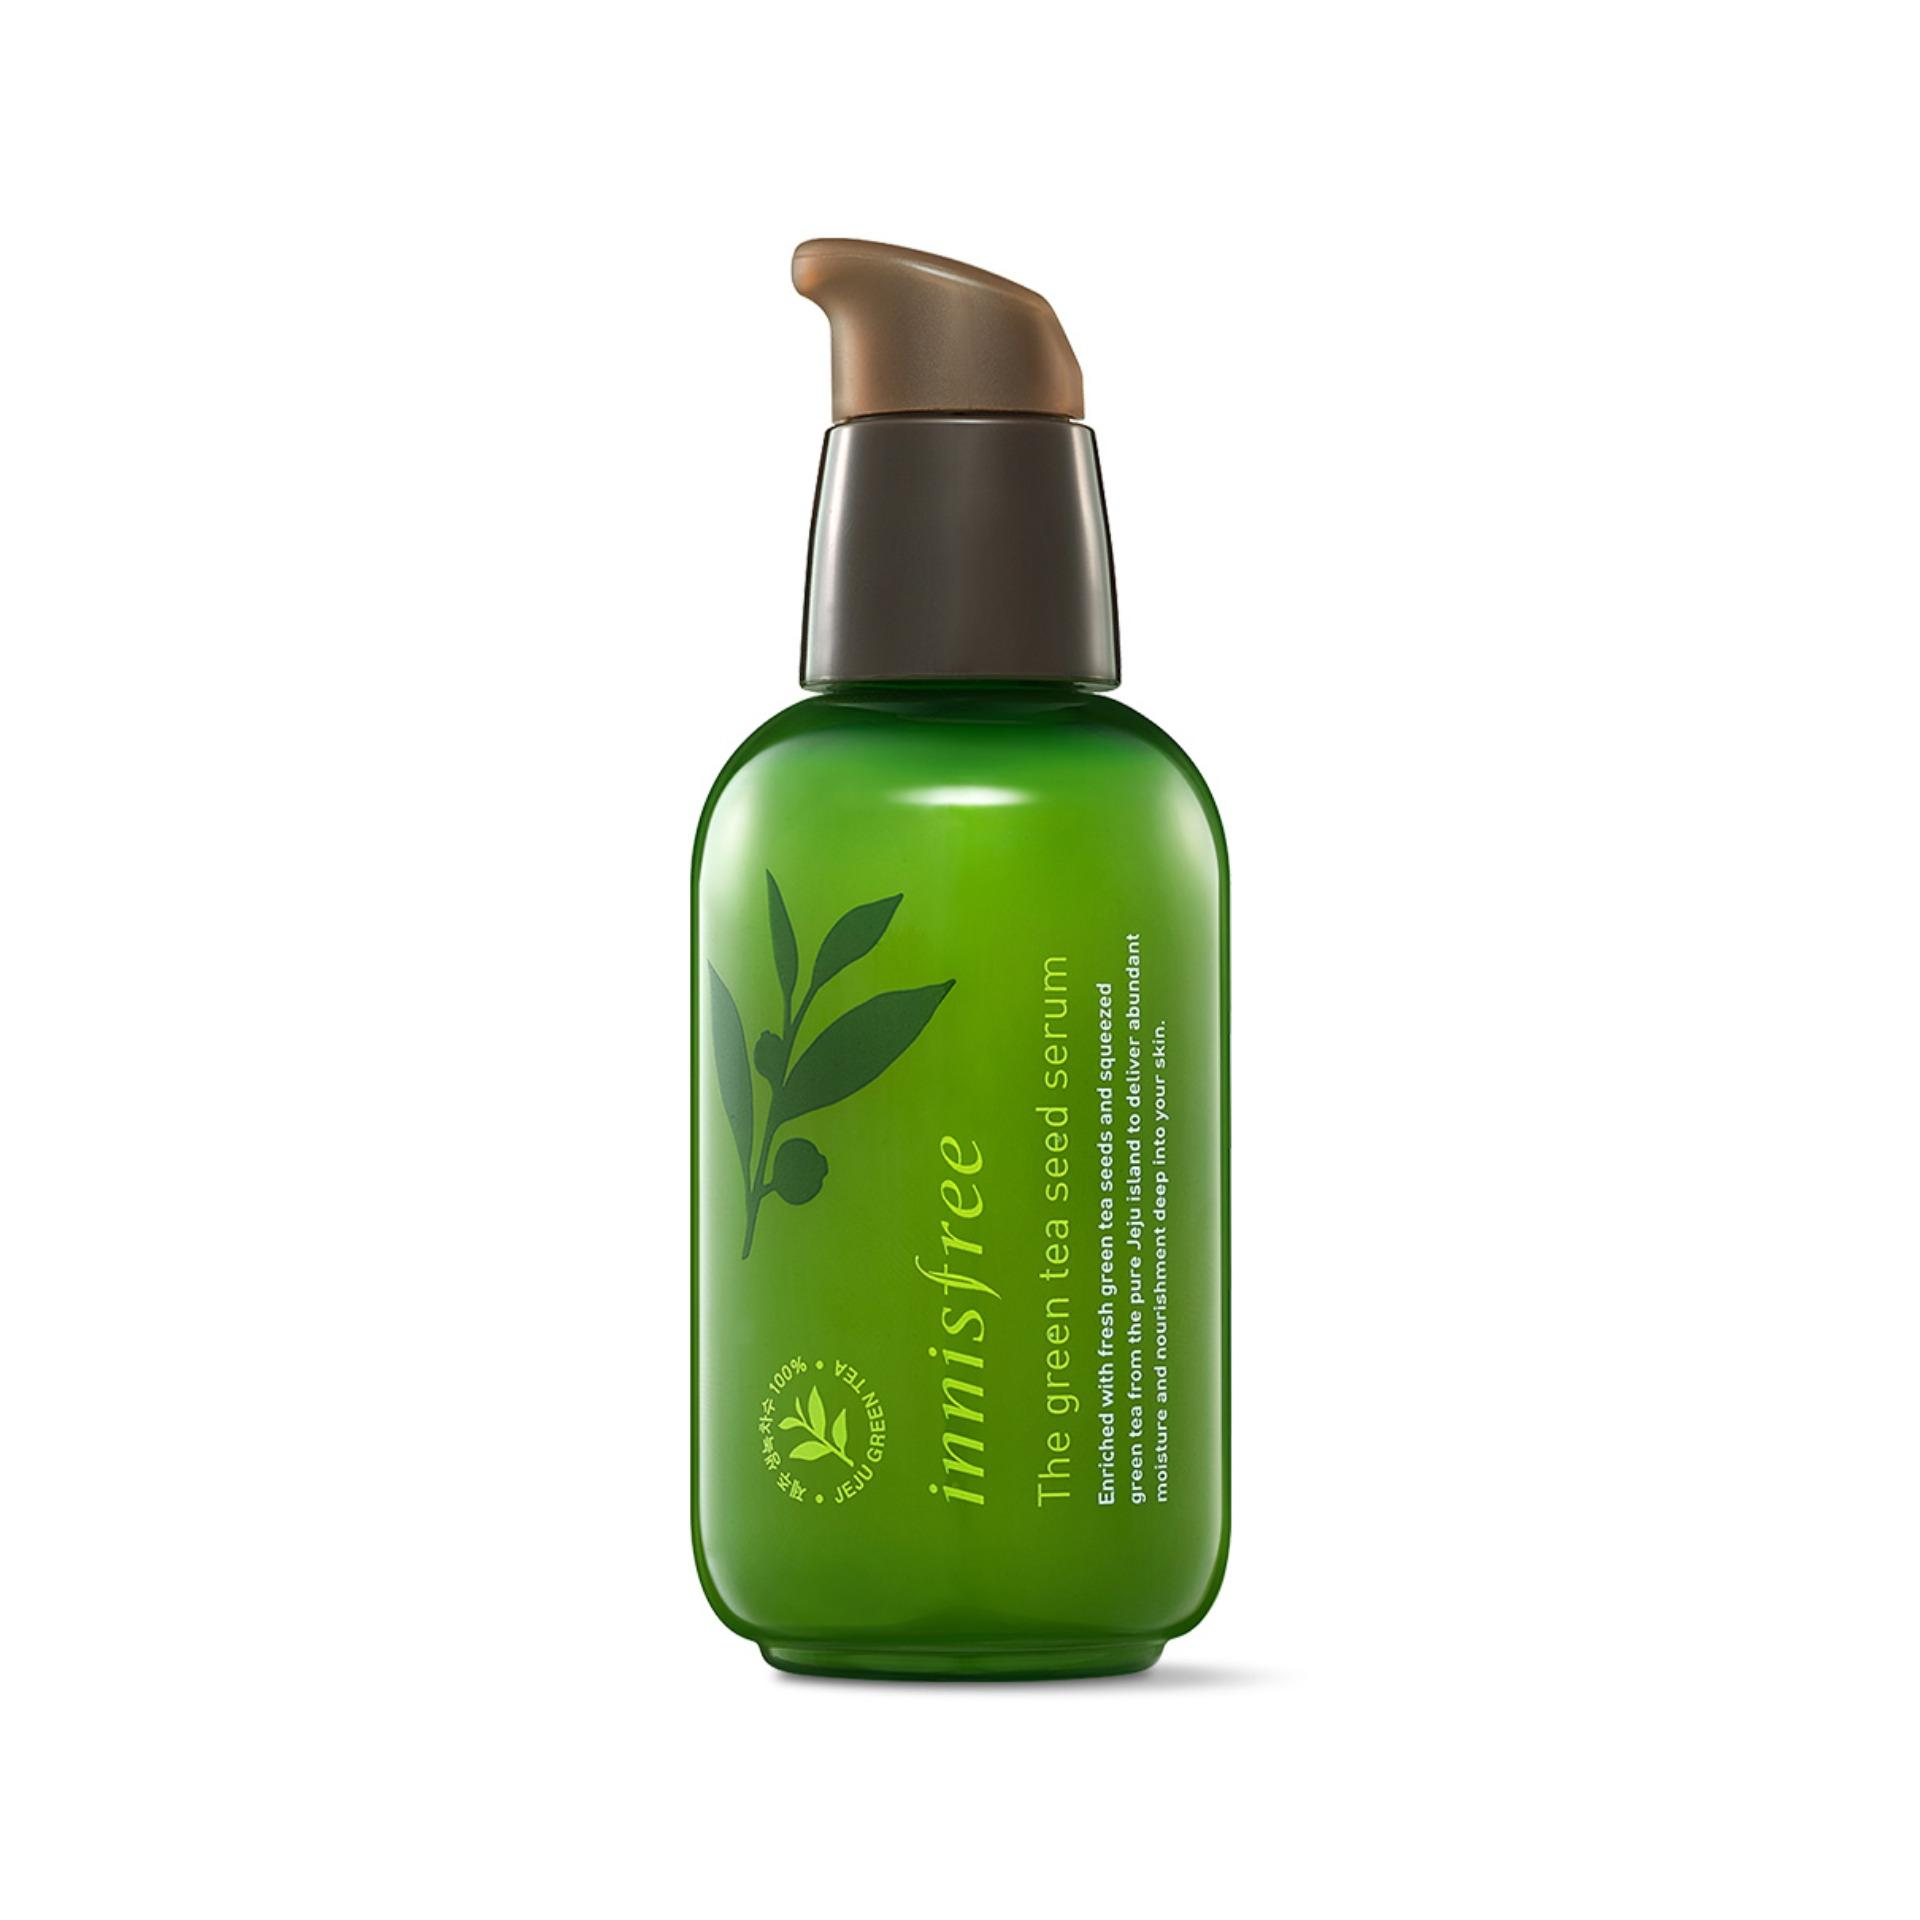 Innisfree The Green Tea Seed Serum 80Ml On Line